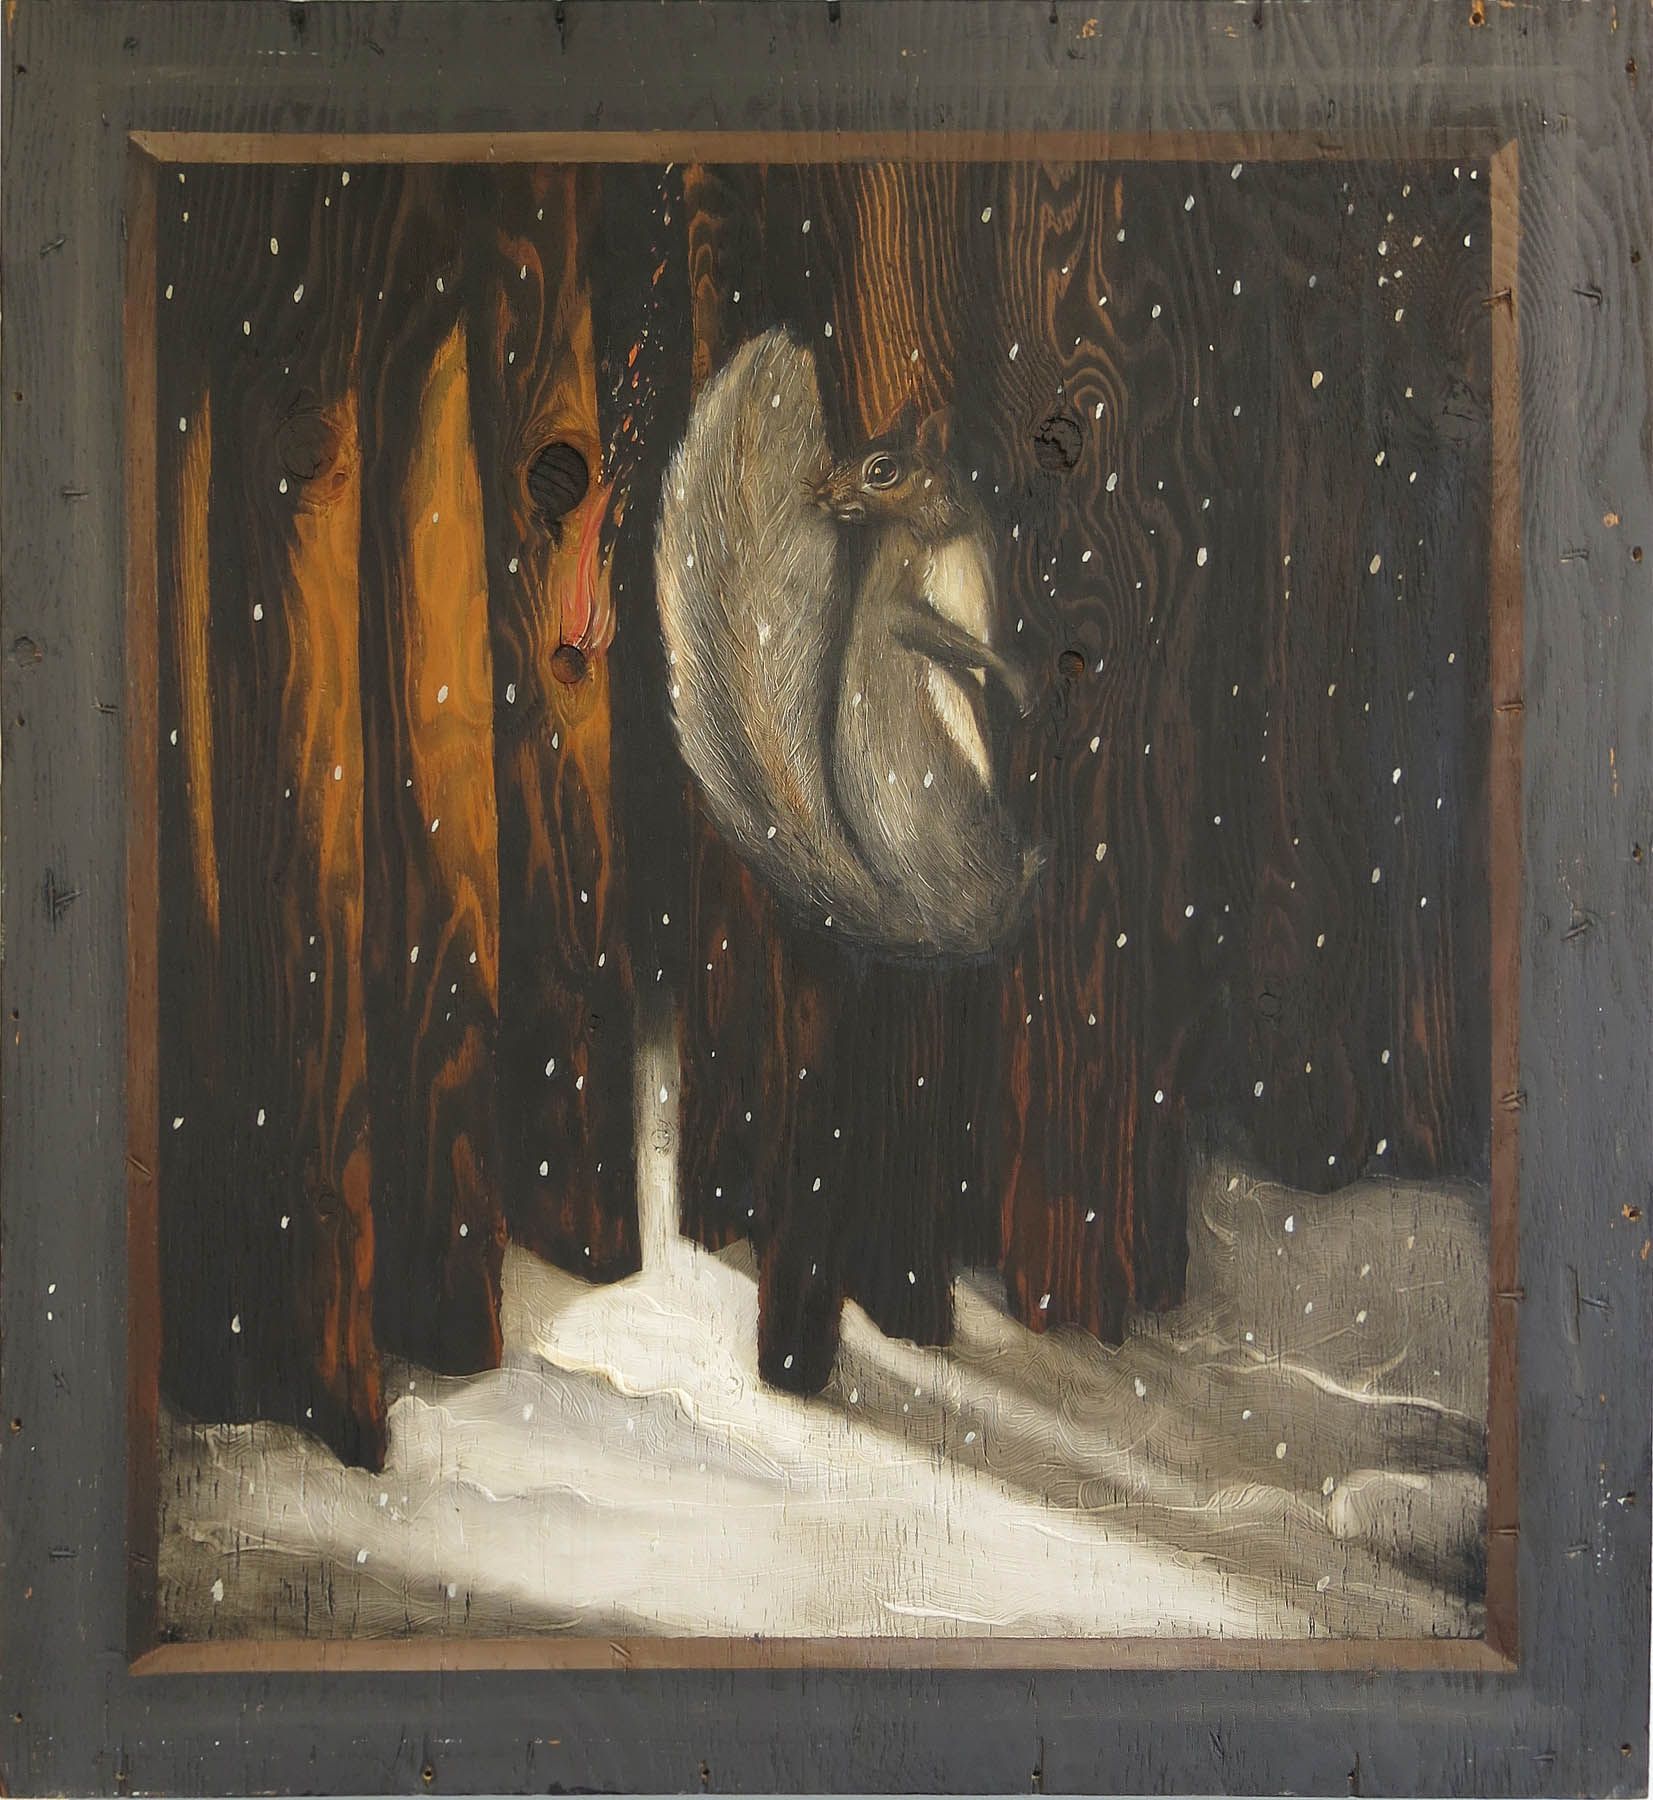 Robert Helm,  Fire Starter,  1985, oil on wood (crate lid), 36h x 33w x 1d in.